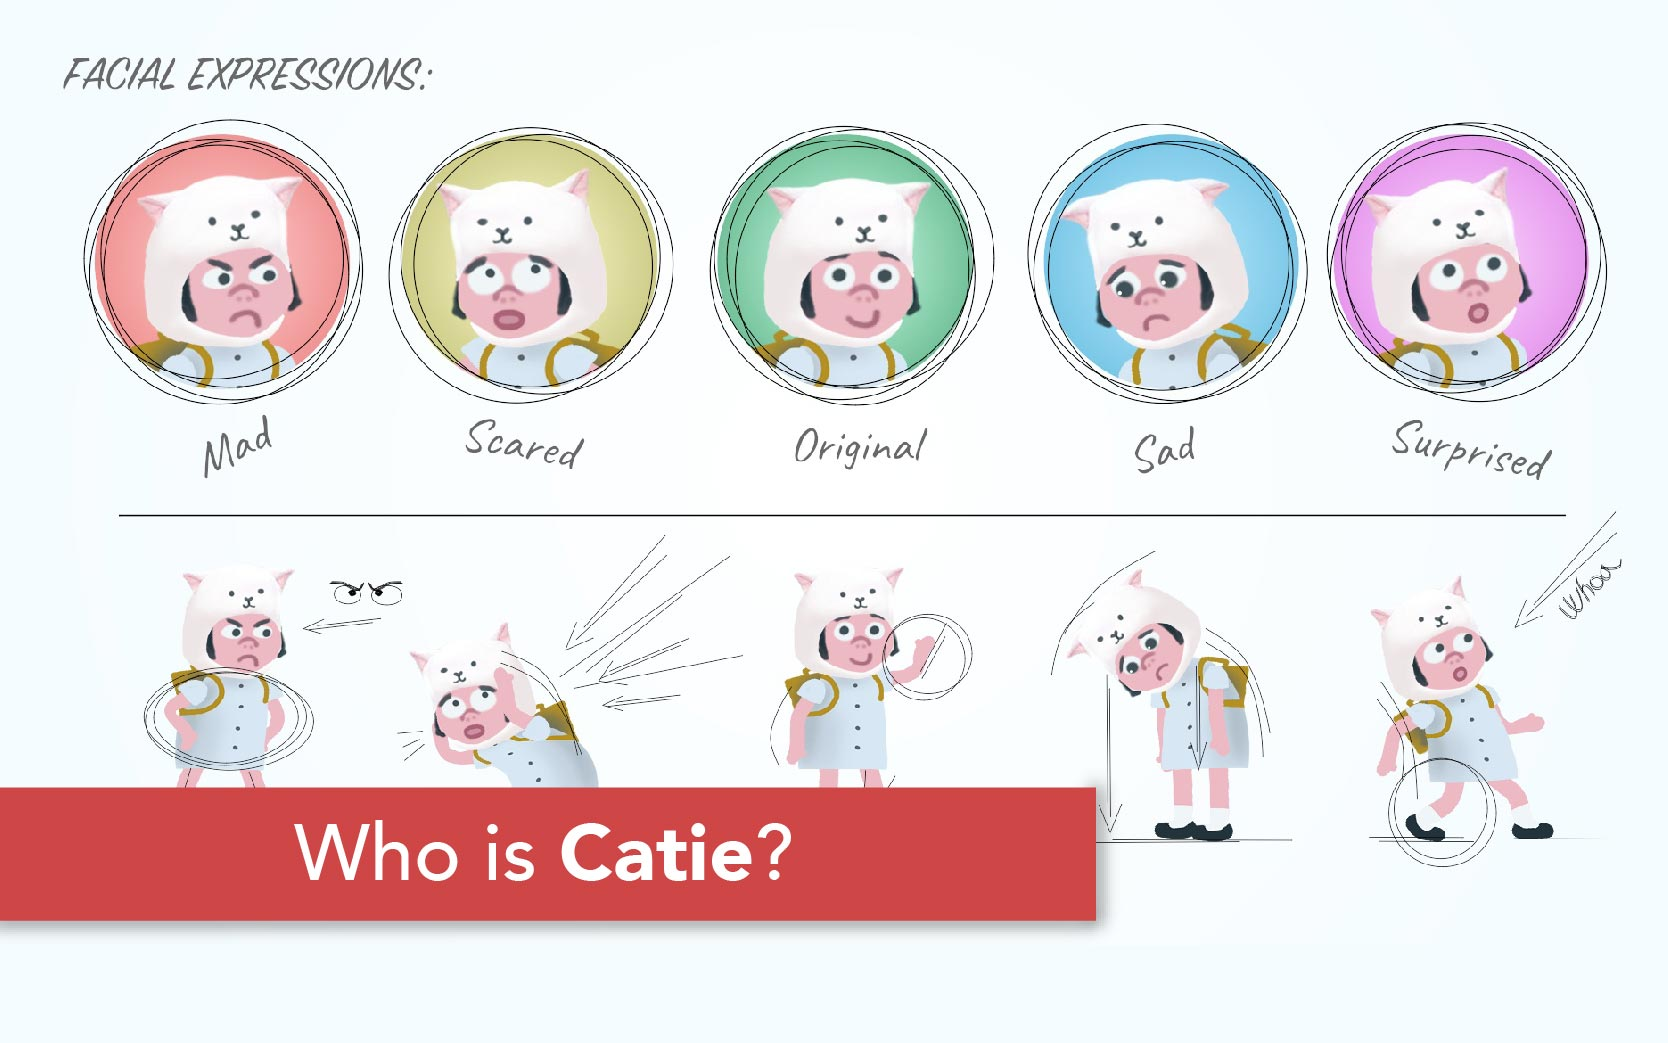 Catie in MeowmeowLand - Who is Catie as a main character of point and click adventure indie game